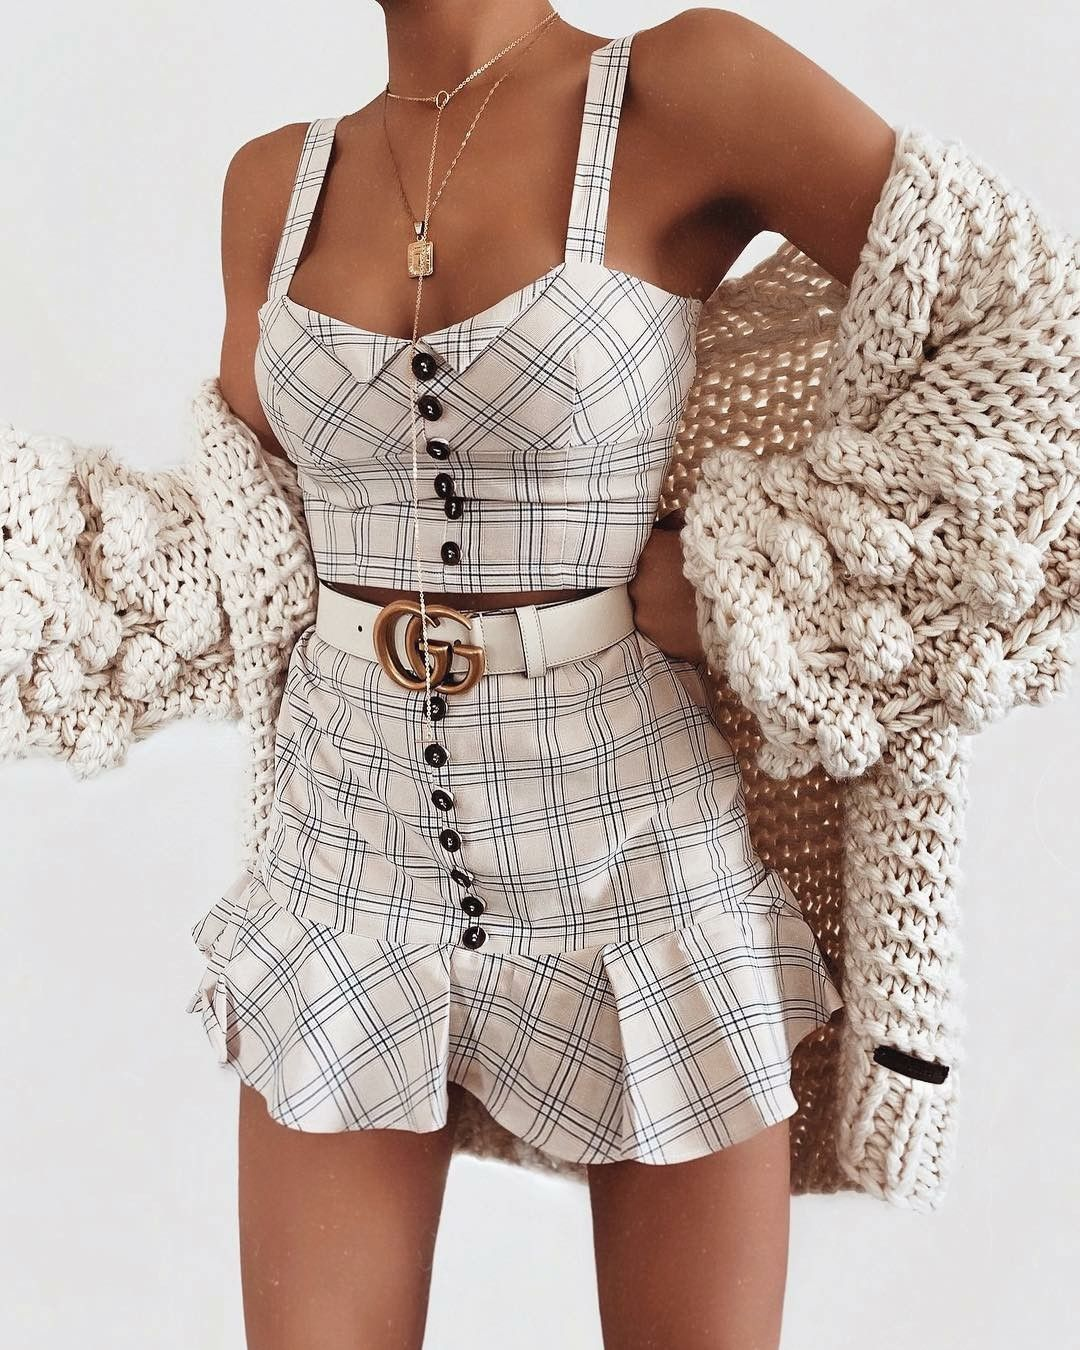 Trendy summer outfits image by a l i n a h on S T Y L E